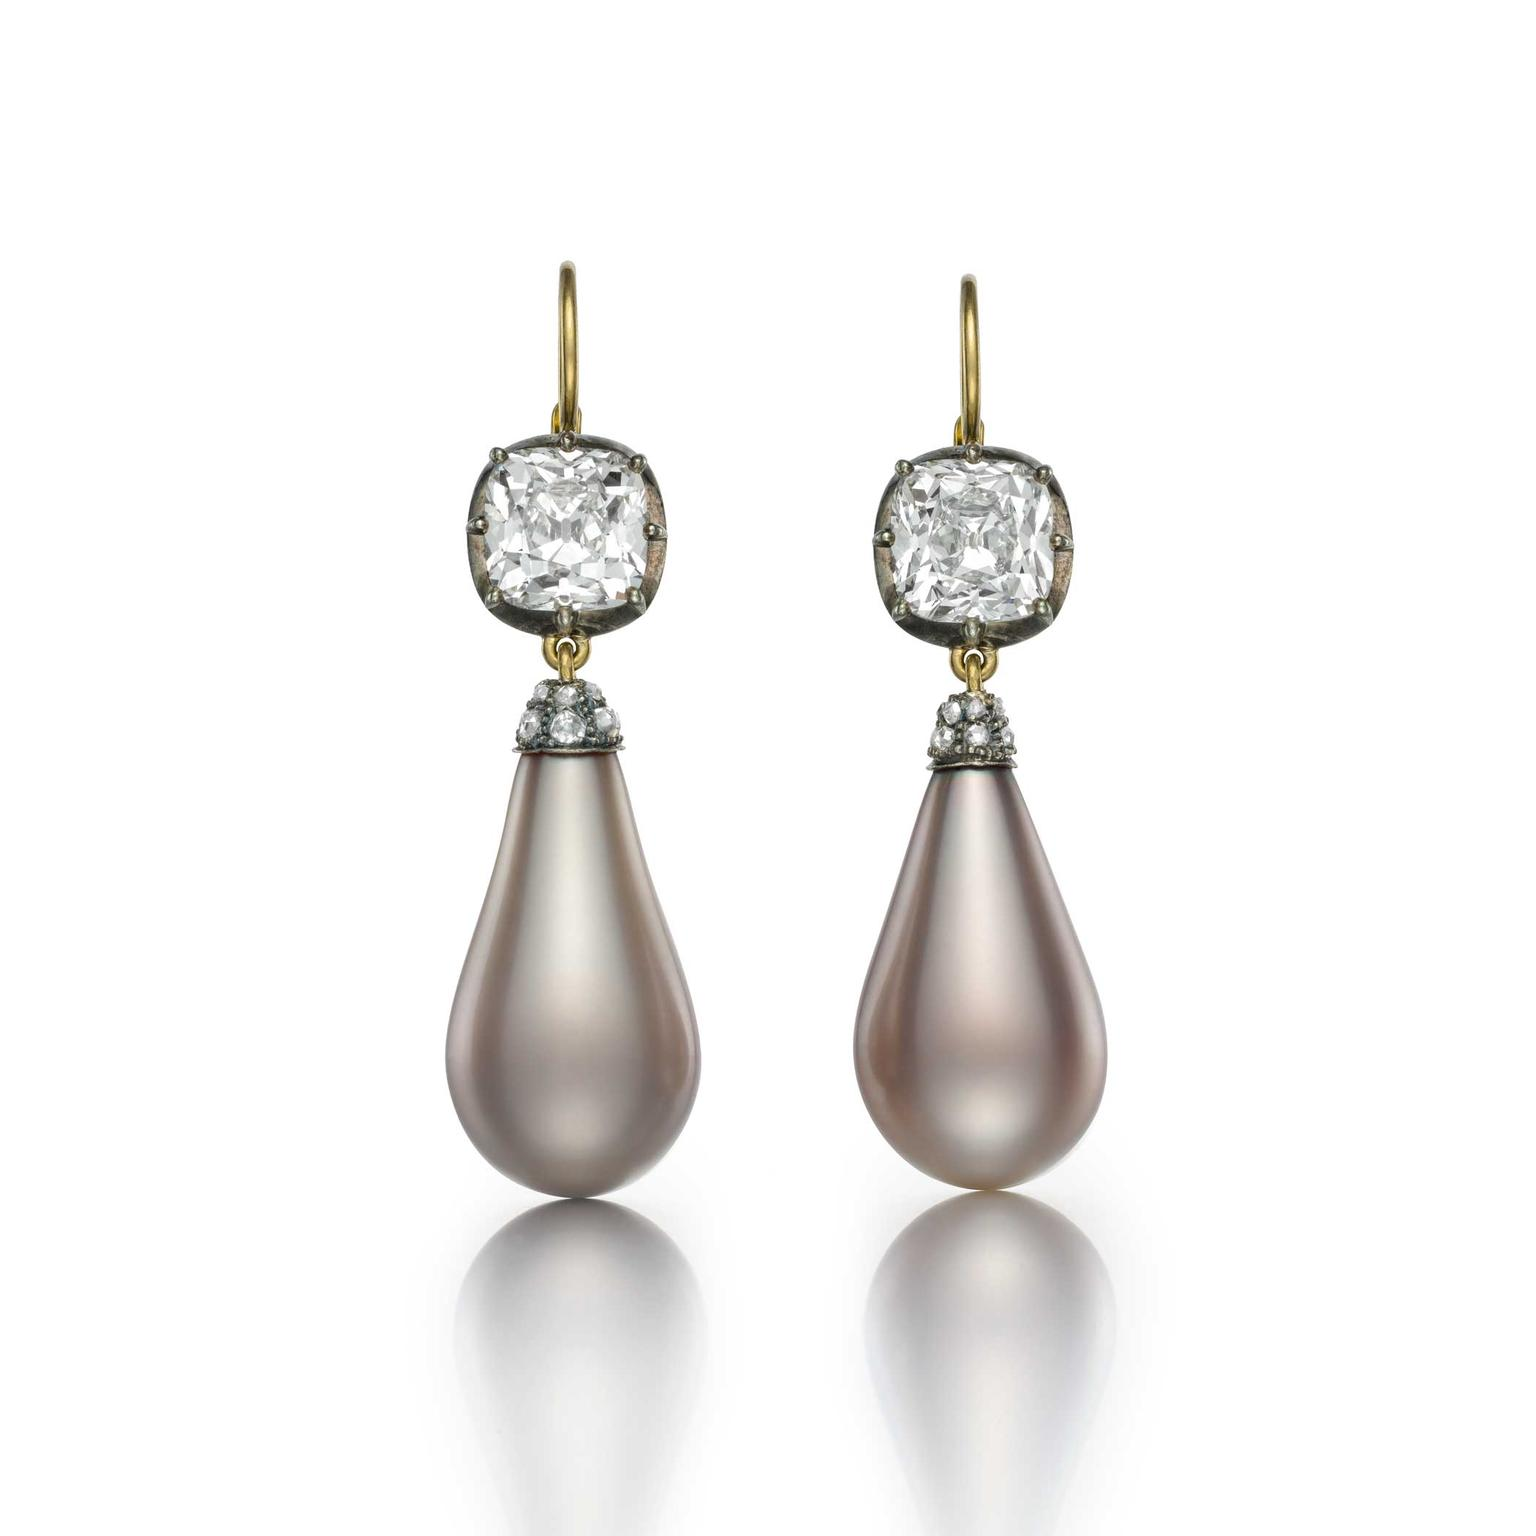 Empress Eugénie natural grey pearl earrings courtesy of Siegelson